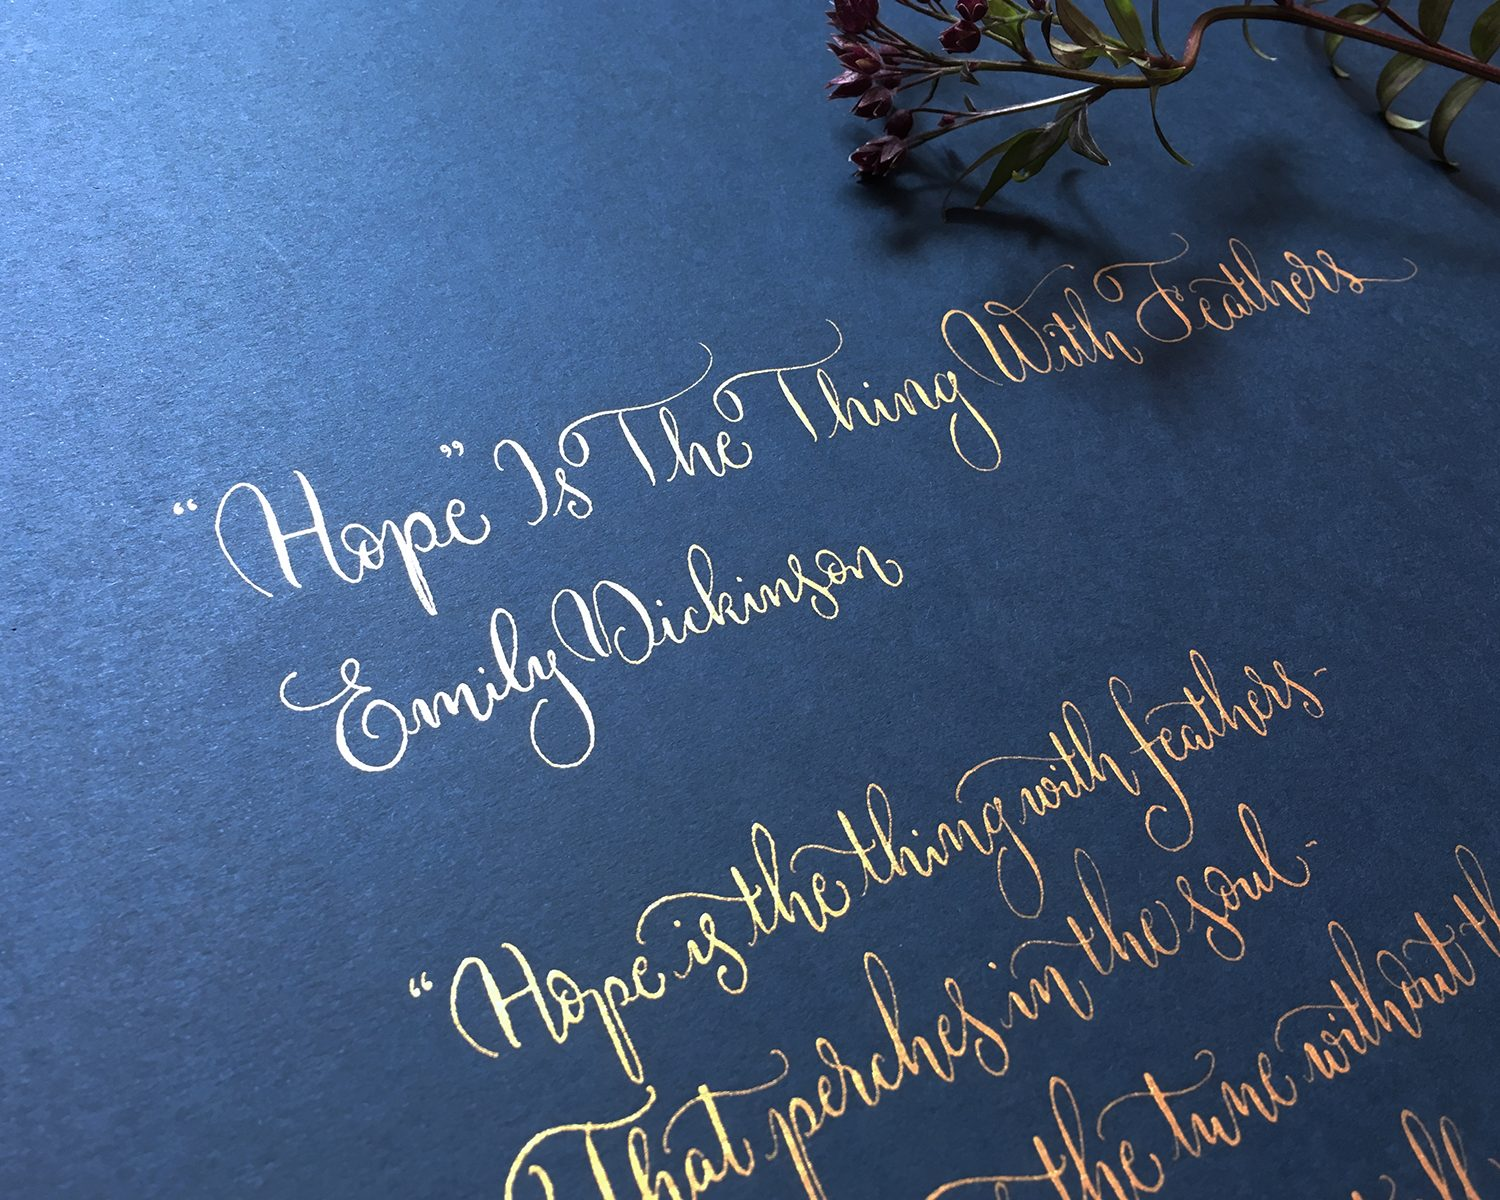 Hope is the thing with feathers by Emily Dickinson in calligraphy